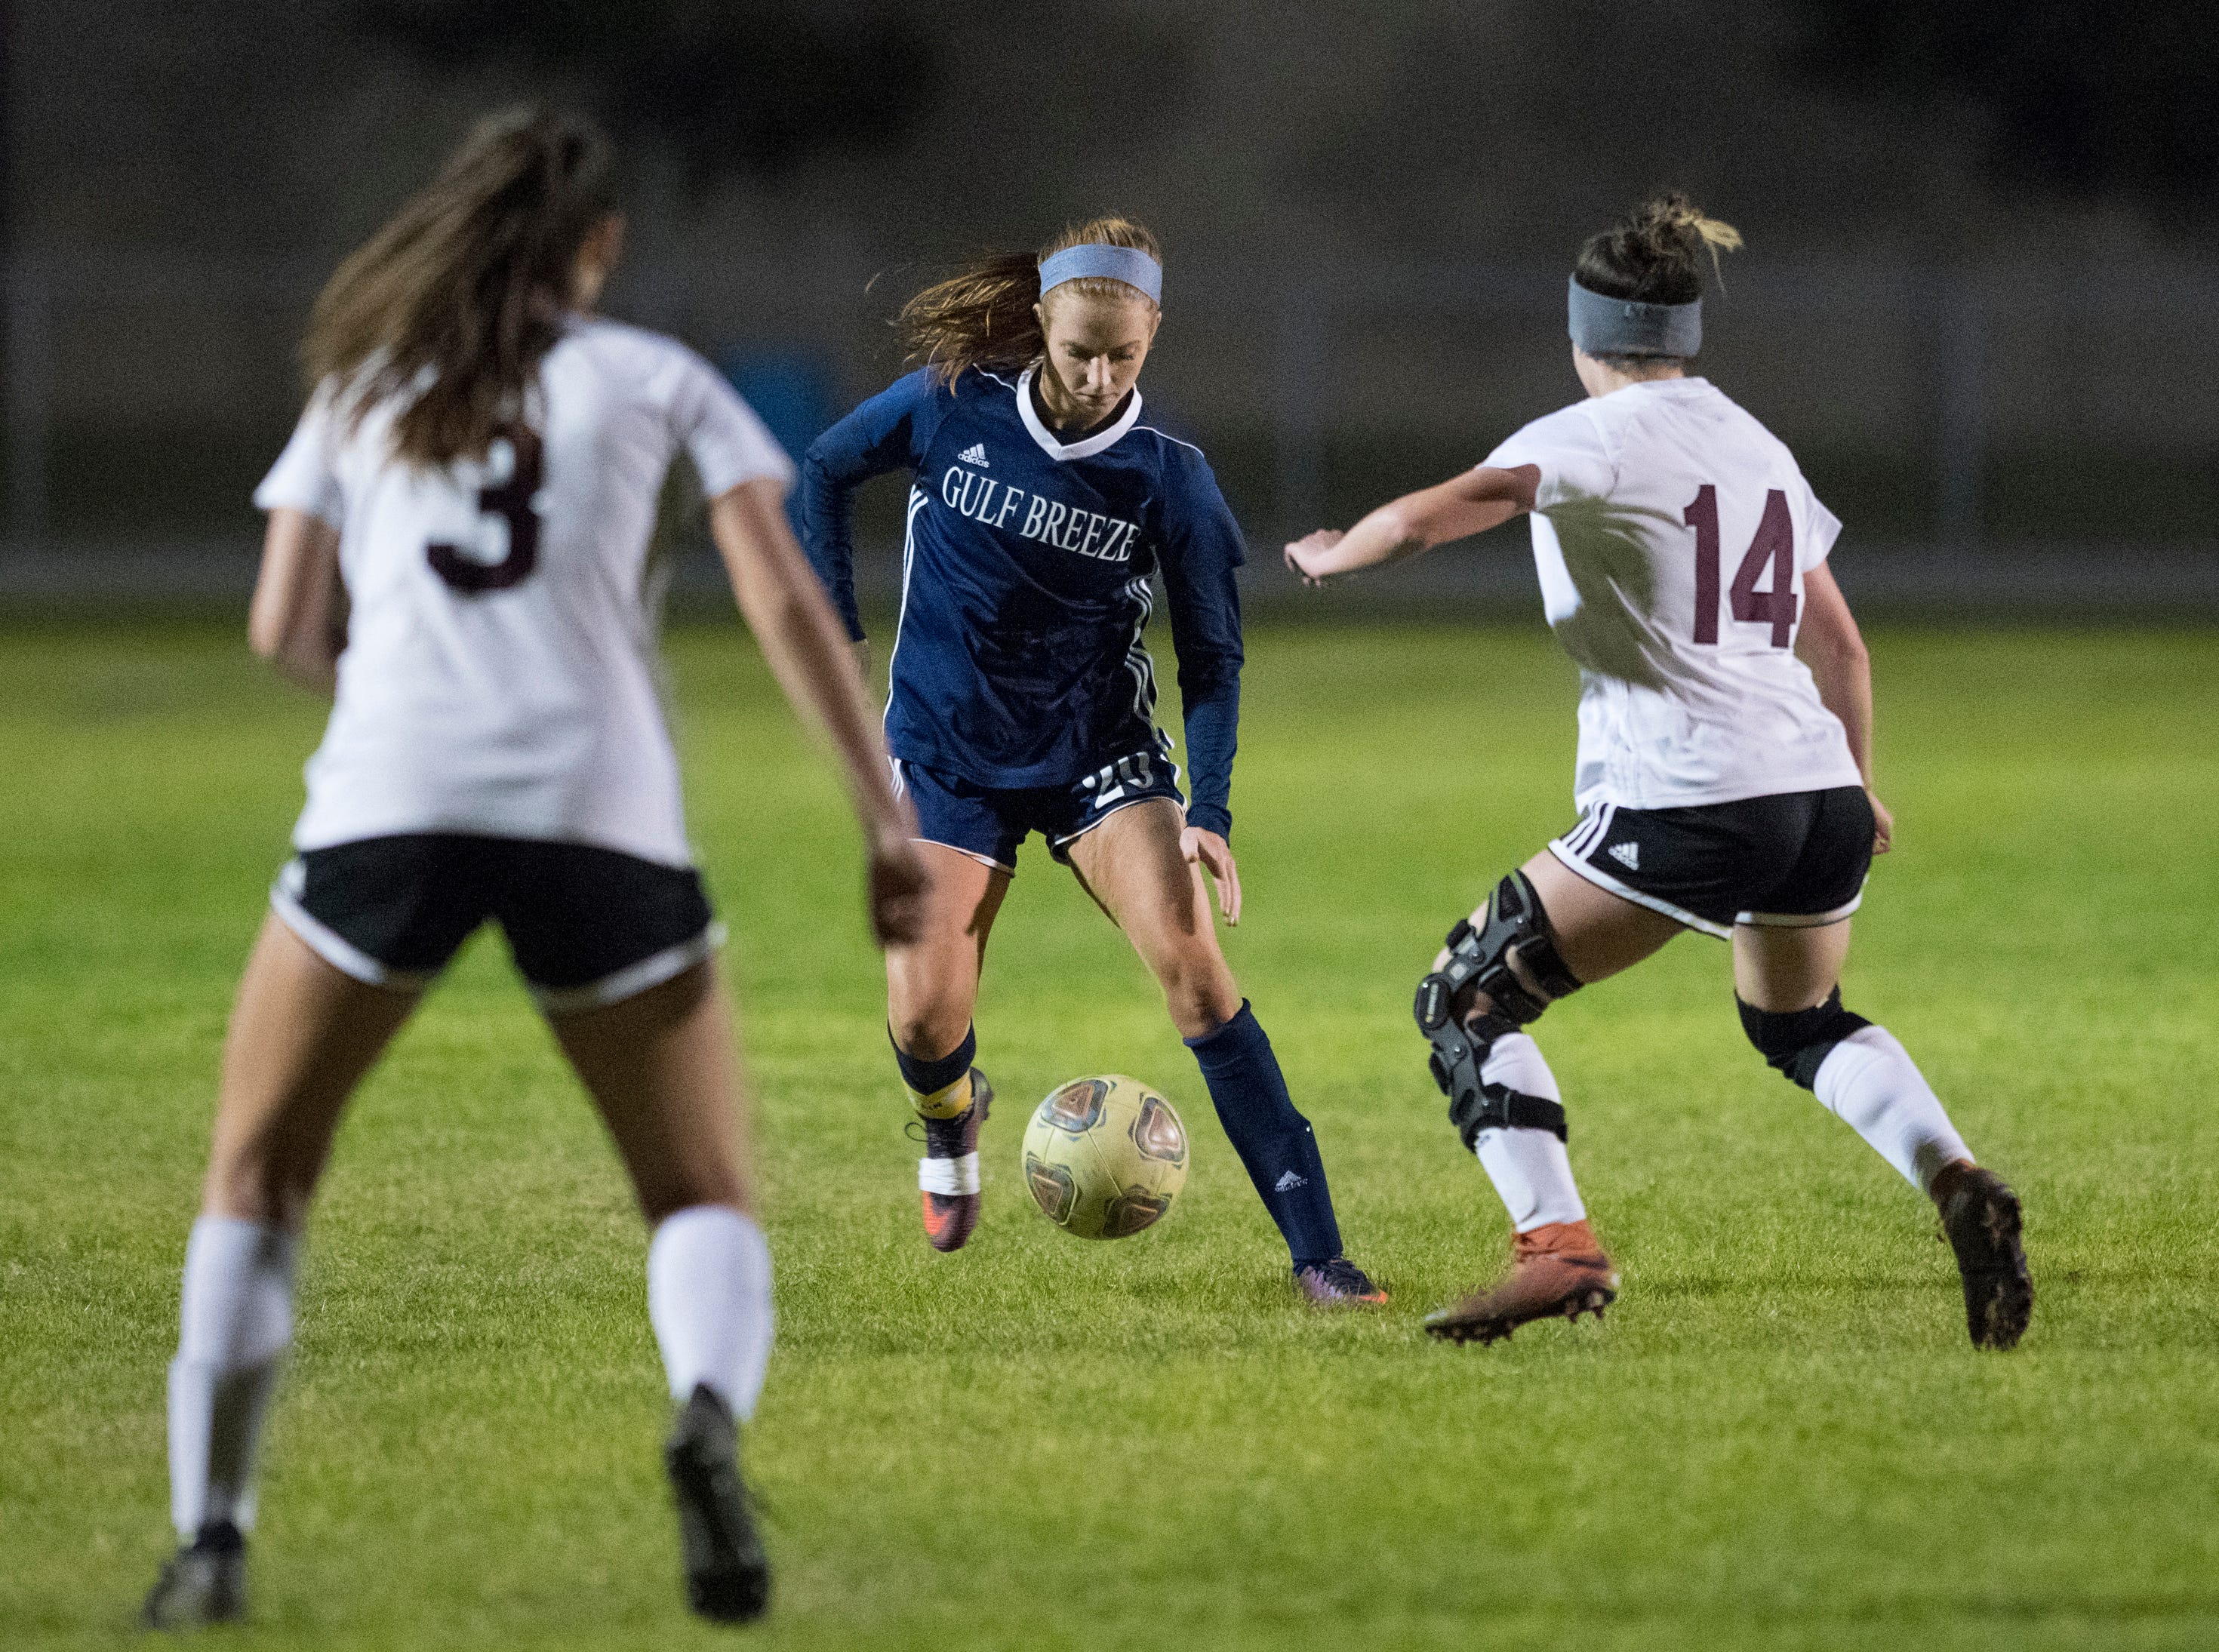 Kristen Goodroe (20) dribbles the ball during the Niceville vs Gulf Breeze soccer game at Gulf Breeze High School on Thursday, January 10, 2019.